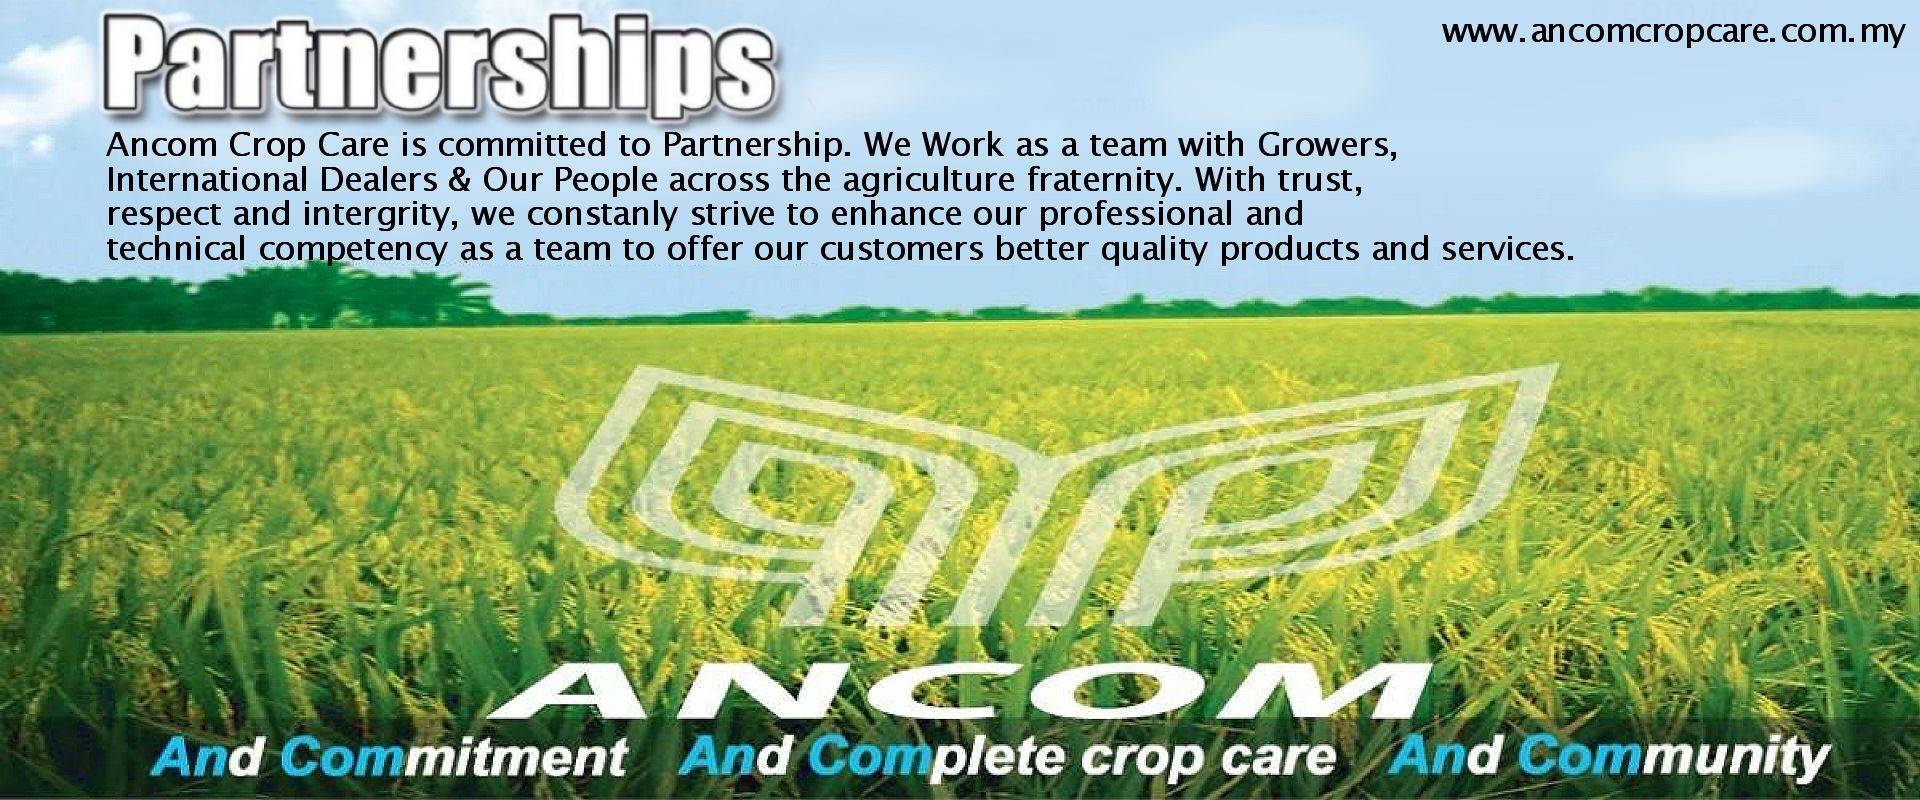 Ancom Crop Care